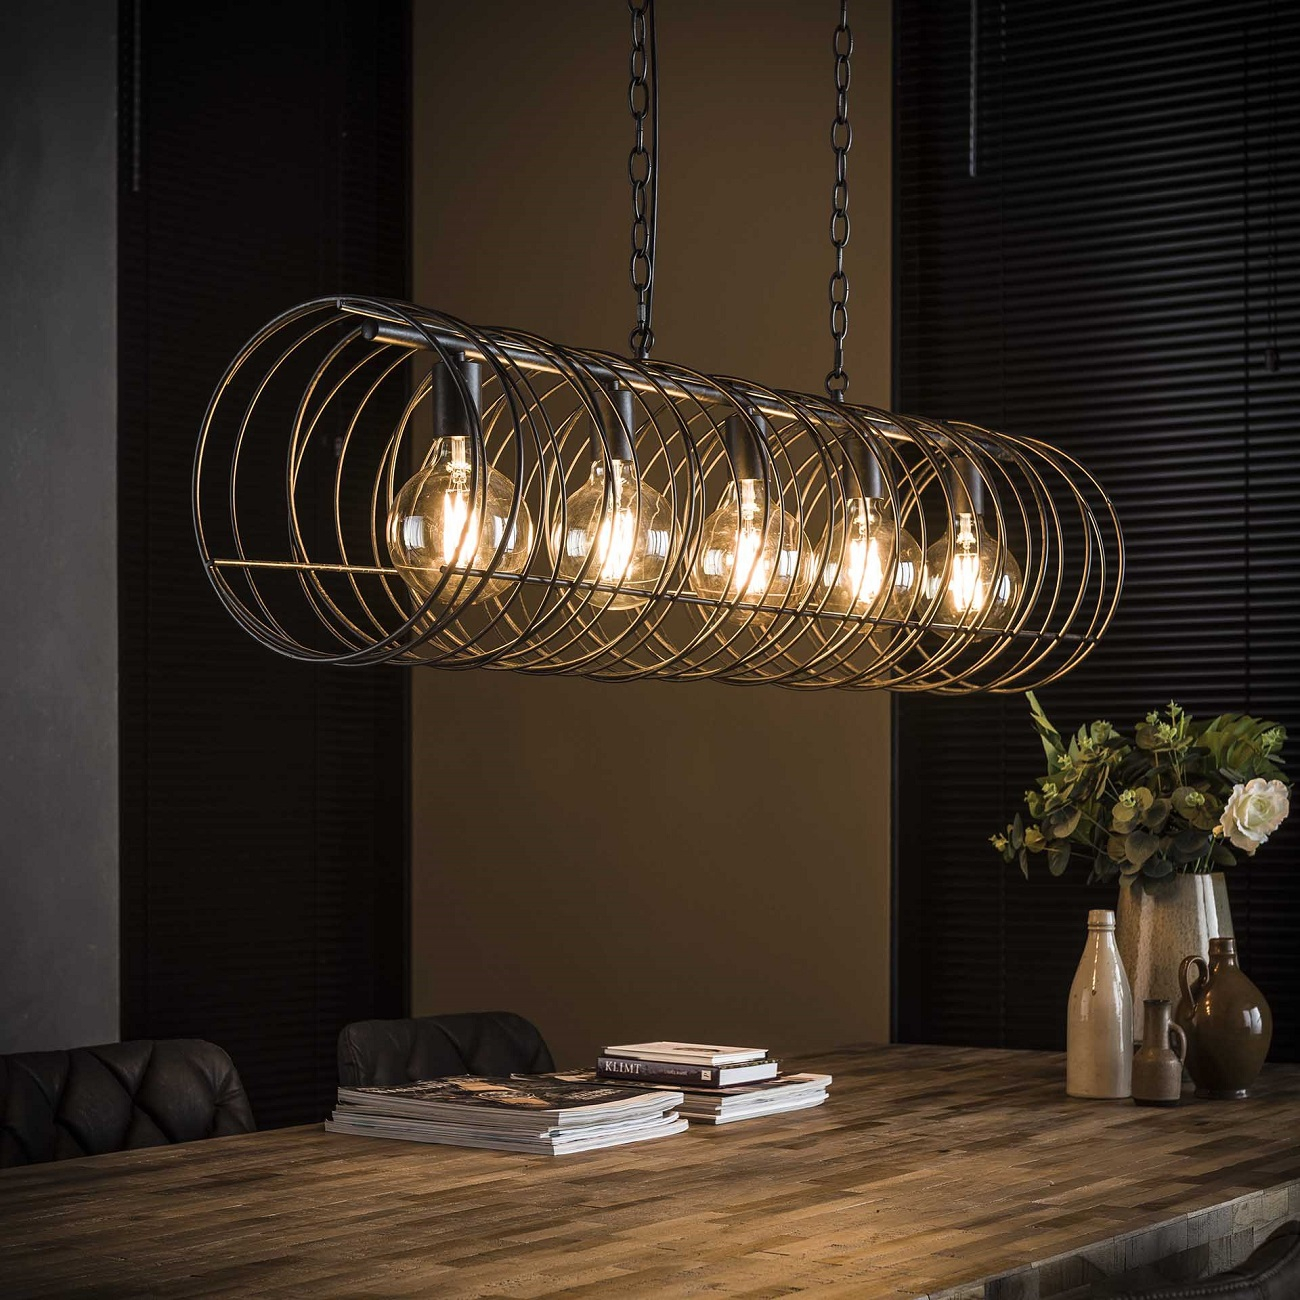 Hanglamp Willy Ø28 van 120 cm breed in charcoal